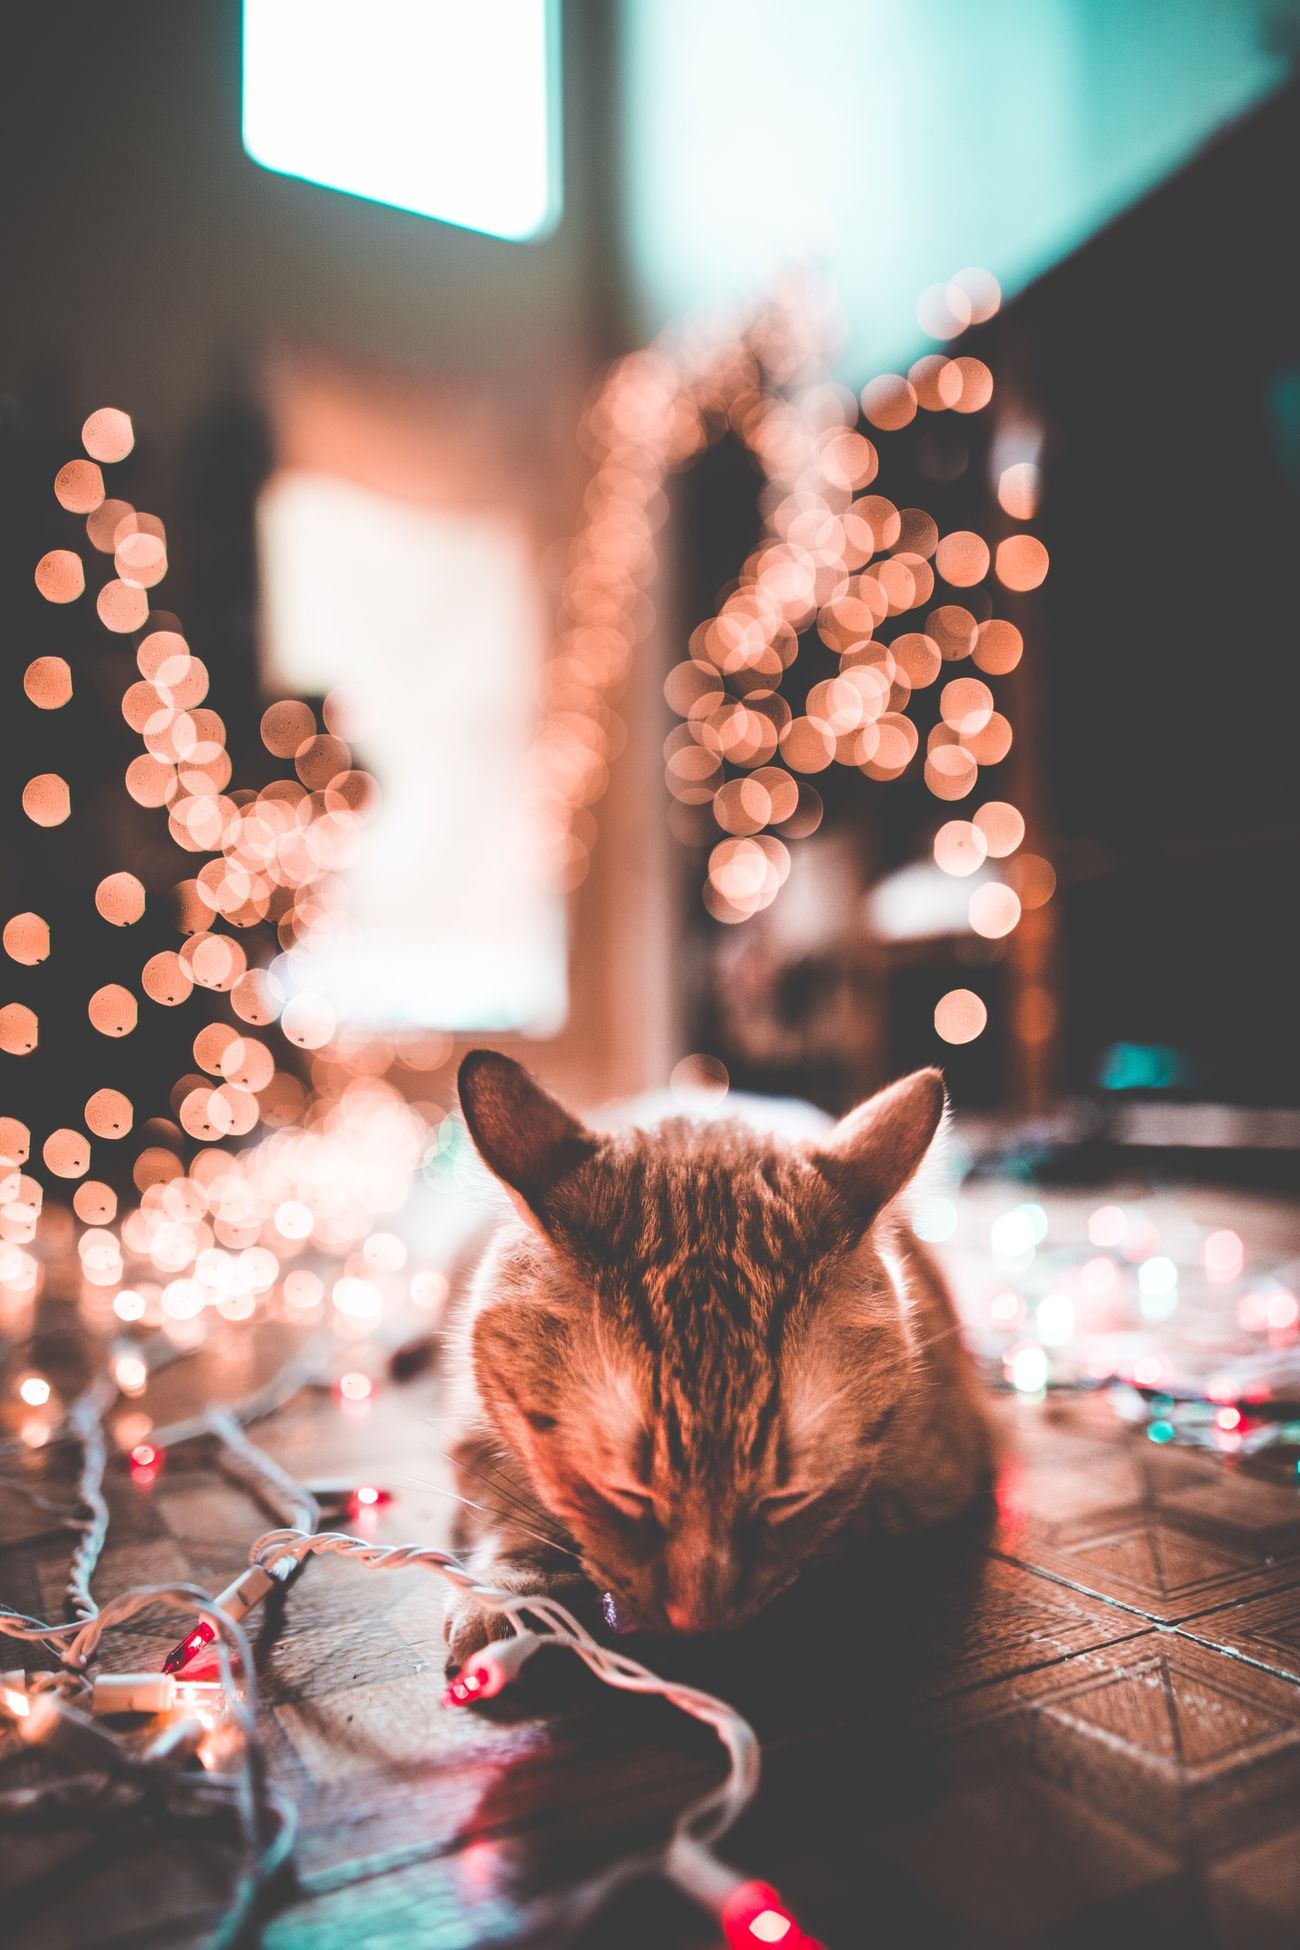 Christmas Domestic Cat Christmas Tree Christmas Lights Pets Domestic Animals Christmas Decoration Indoors  Celebration One Animal Celebration Event Holiday - Event Animal Themes Mammal Home Interior Tradition Illuminated Feline Night Portrait